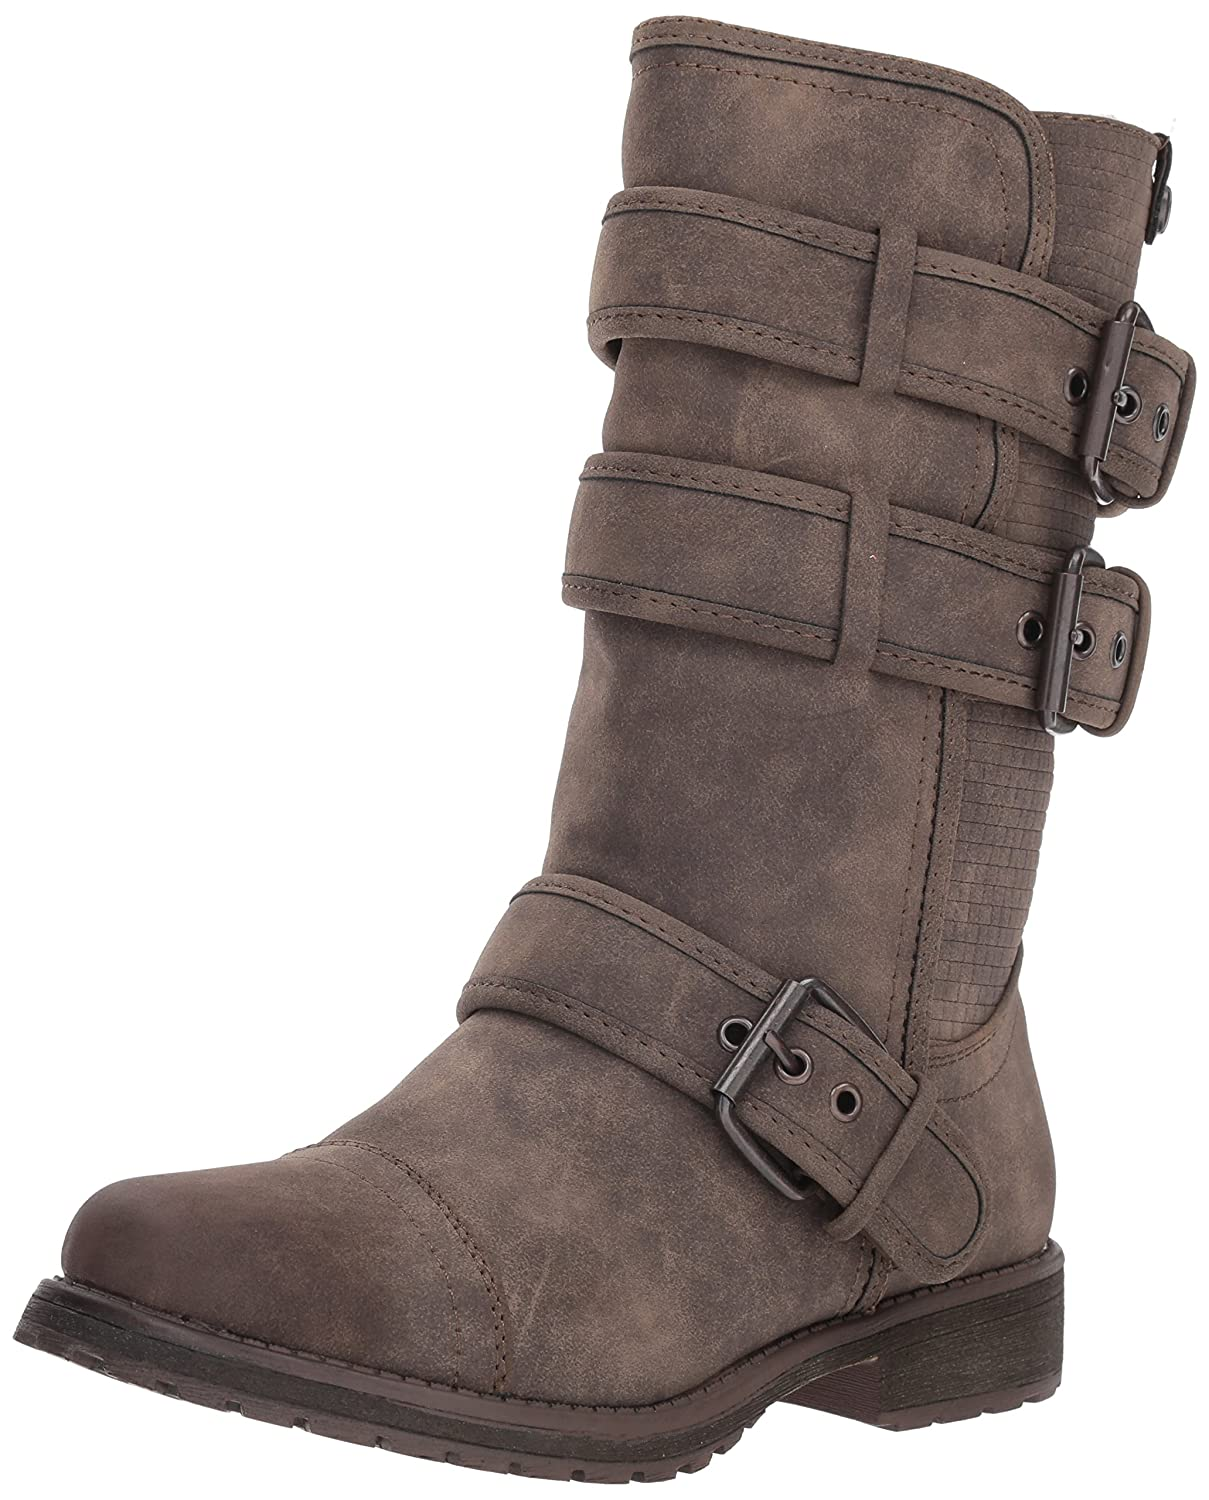 Roxy Women's Martinez Fashion Boot B076ZSMV8L 9 B(M) US|Chocolate